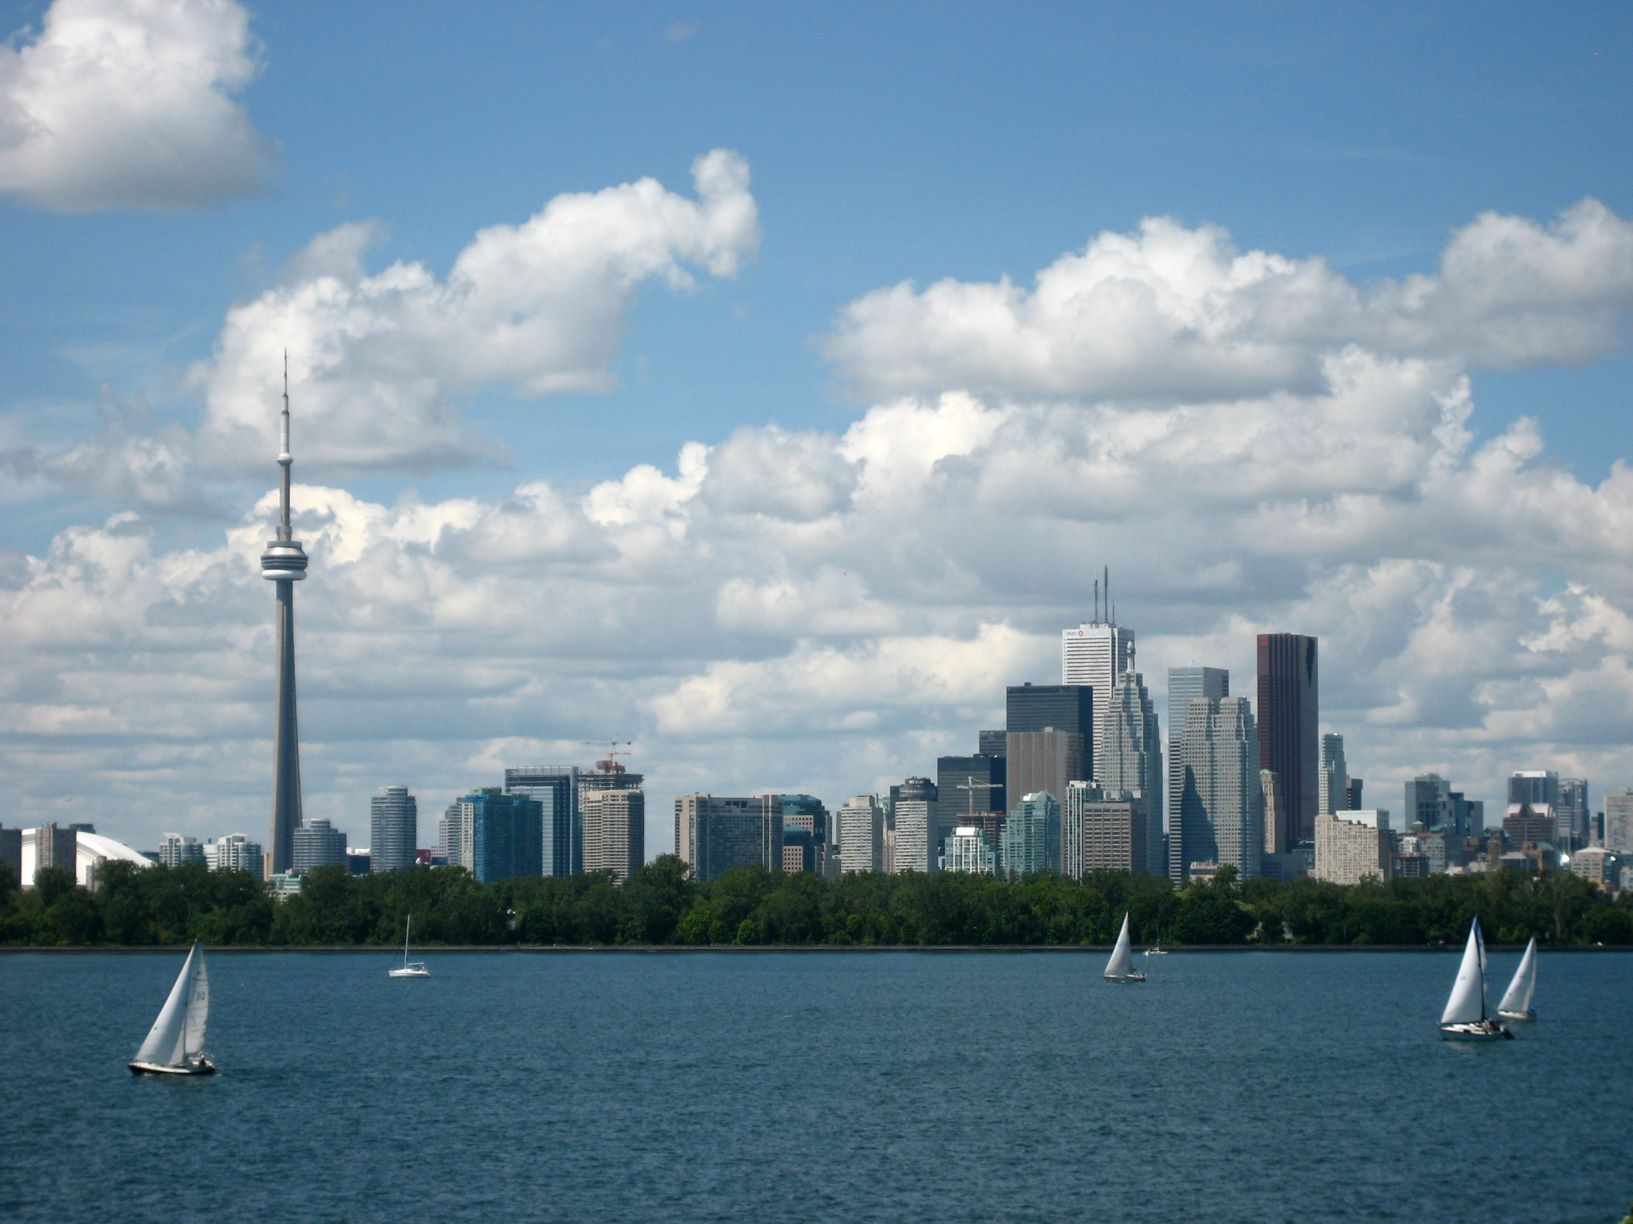 Toronto skyline. Photo credit: Wikimedia by Derek Tsang